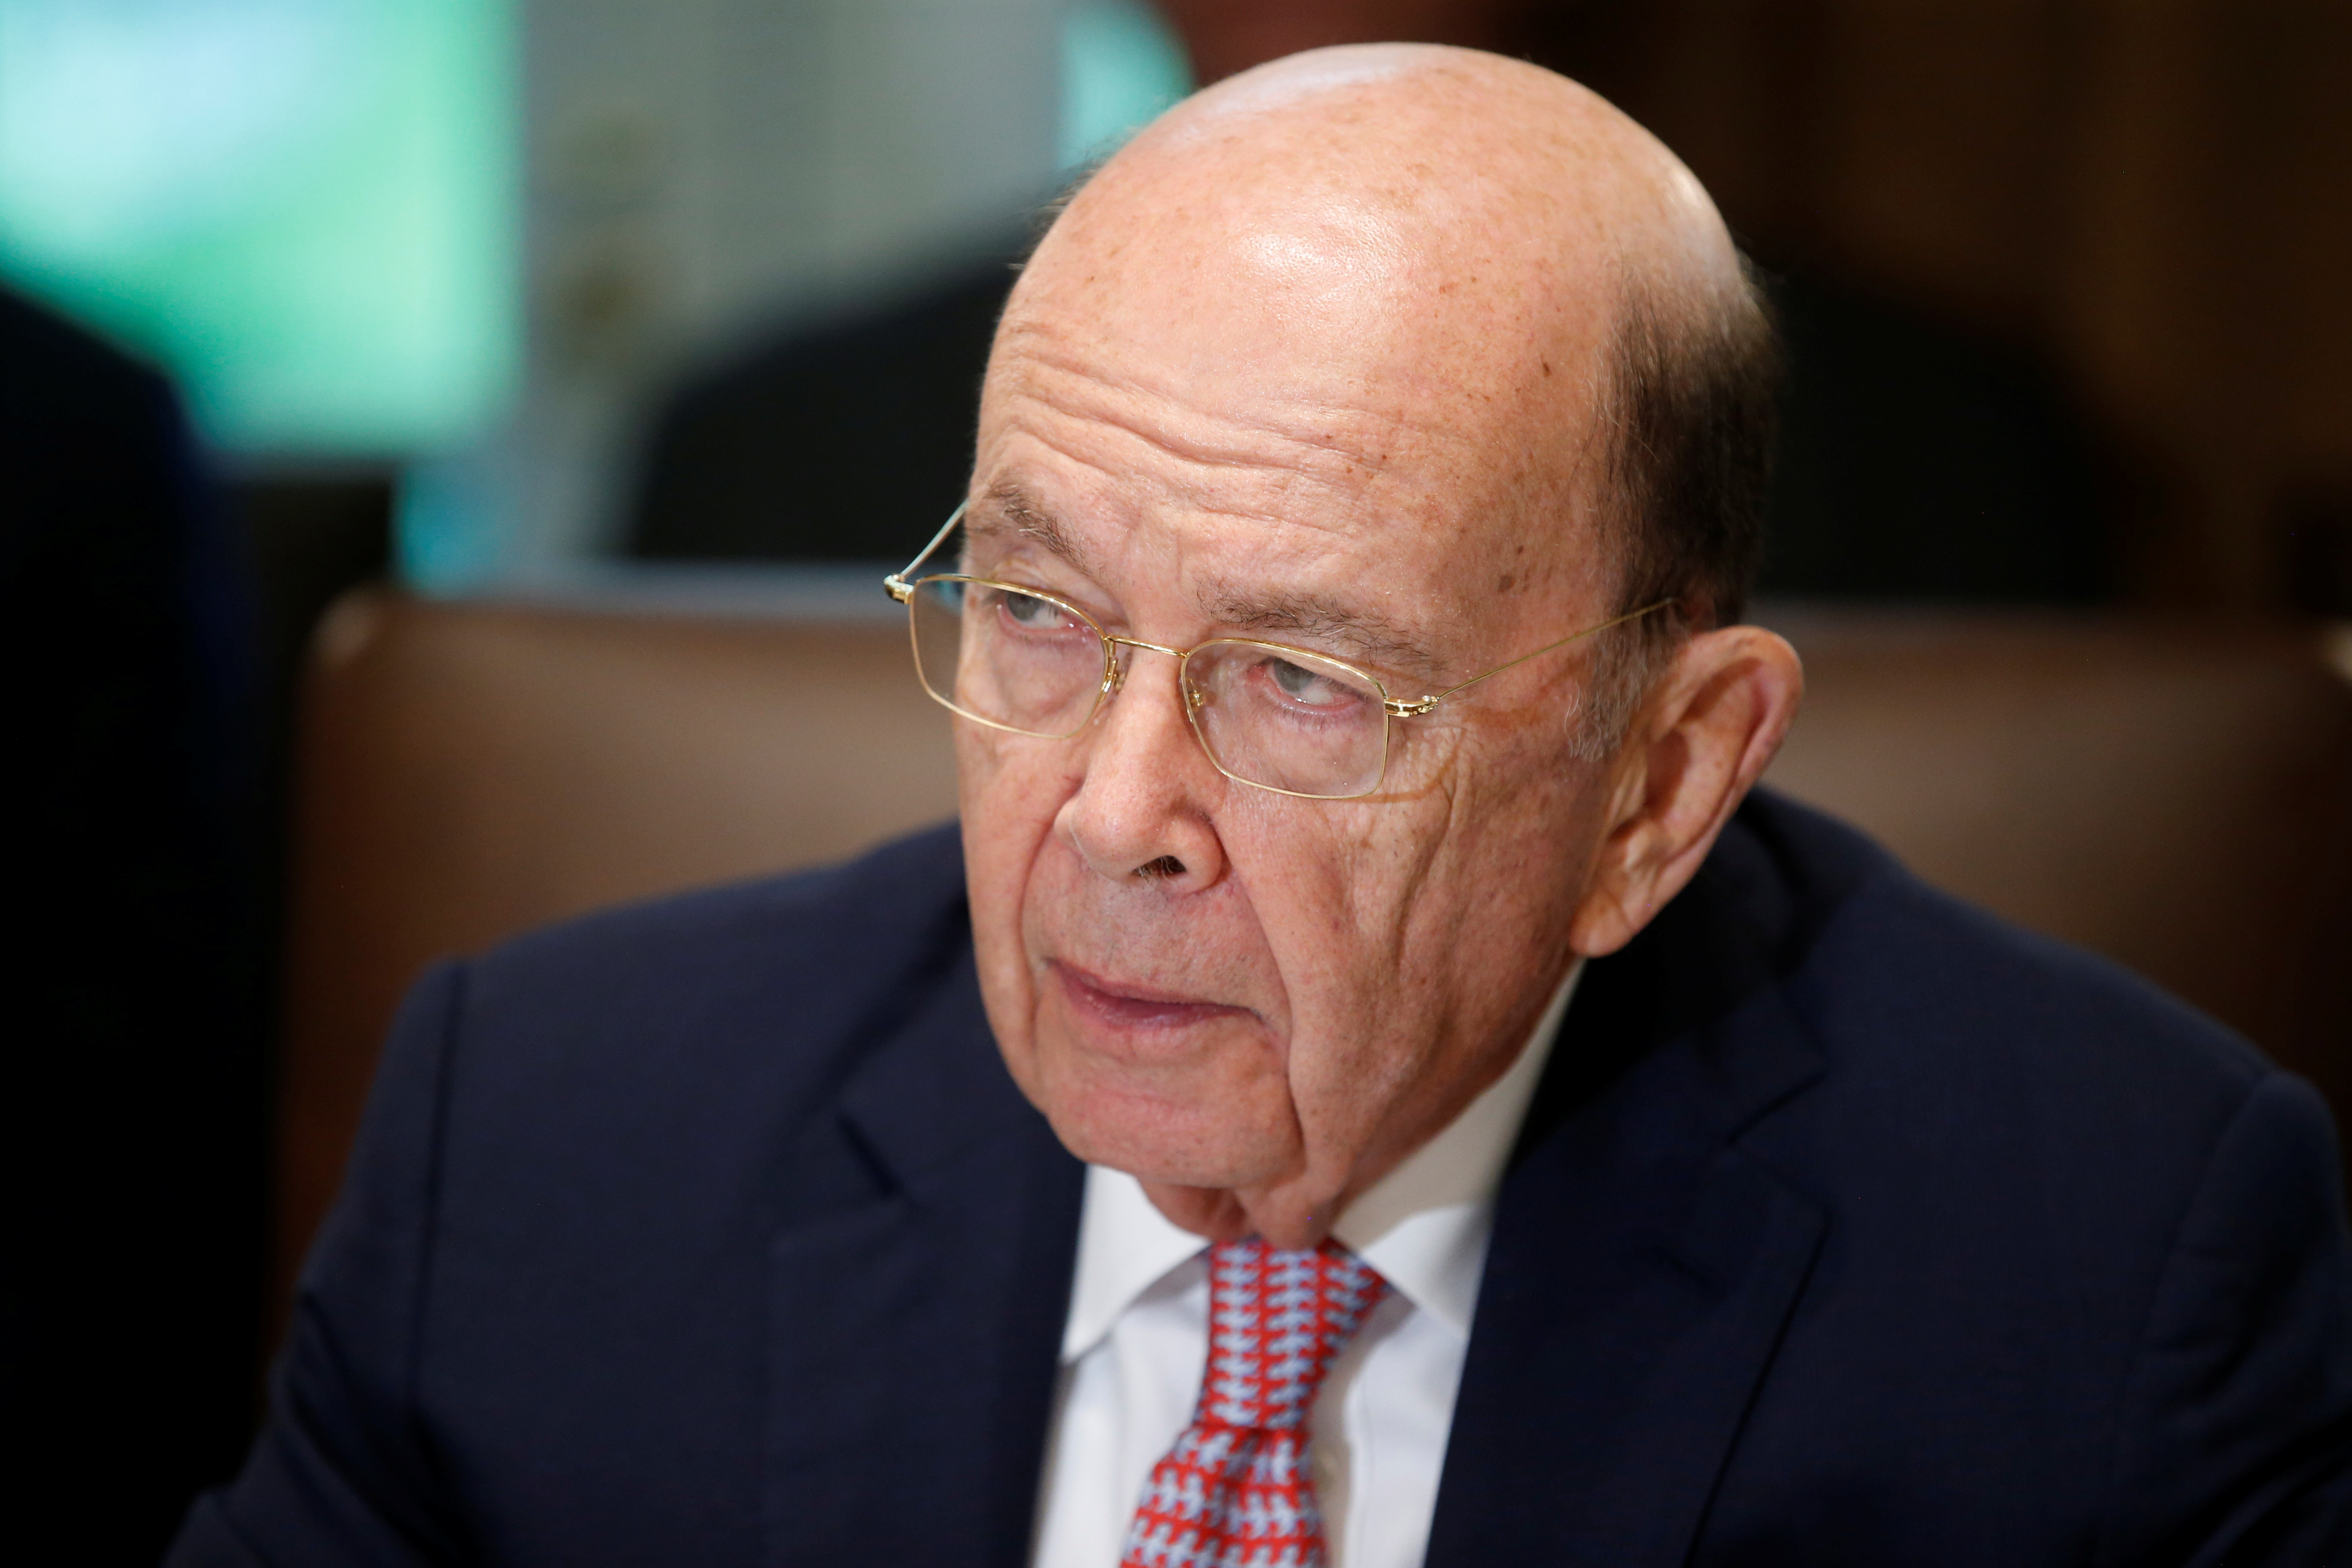 U.S. Commerce Secretary Wilbur Ross attends a cabinet meeting at the White House in Washington, U.S., July 18, 2018. REUTERS/Leah Millis